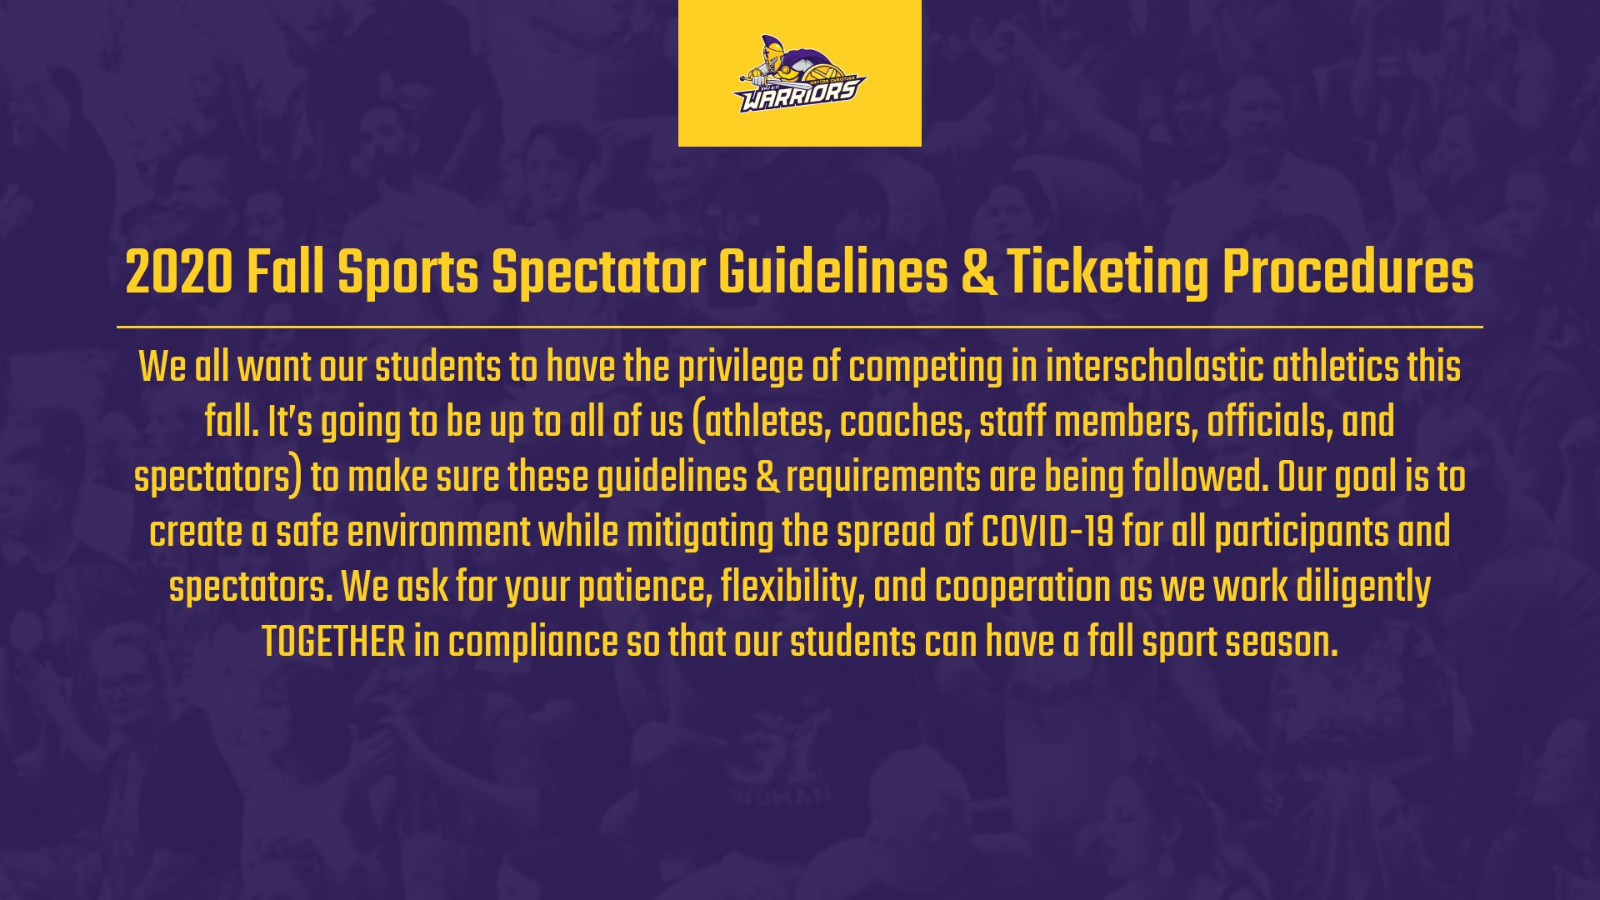 2020 Fall Sports Spectator Guidelines & Ticketing Procedures